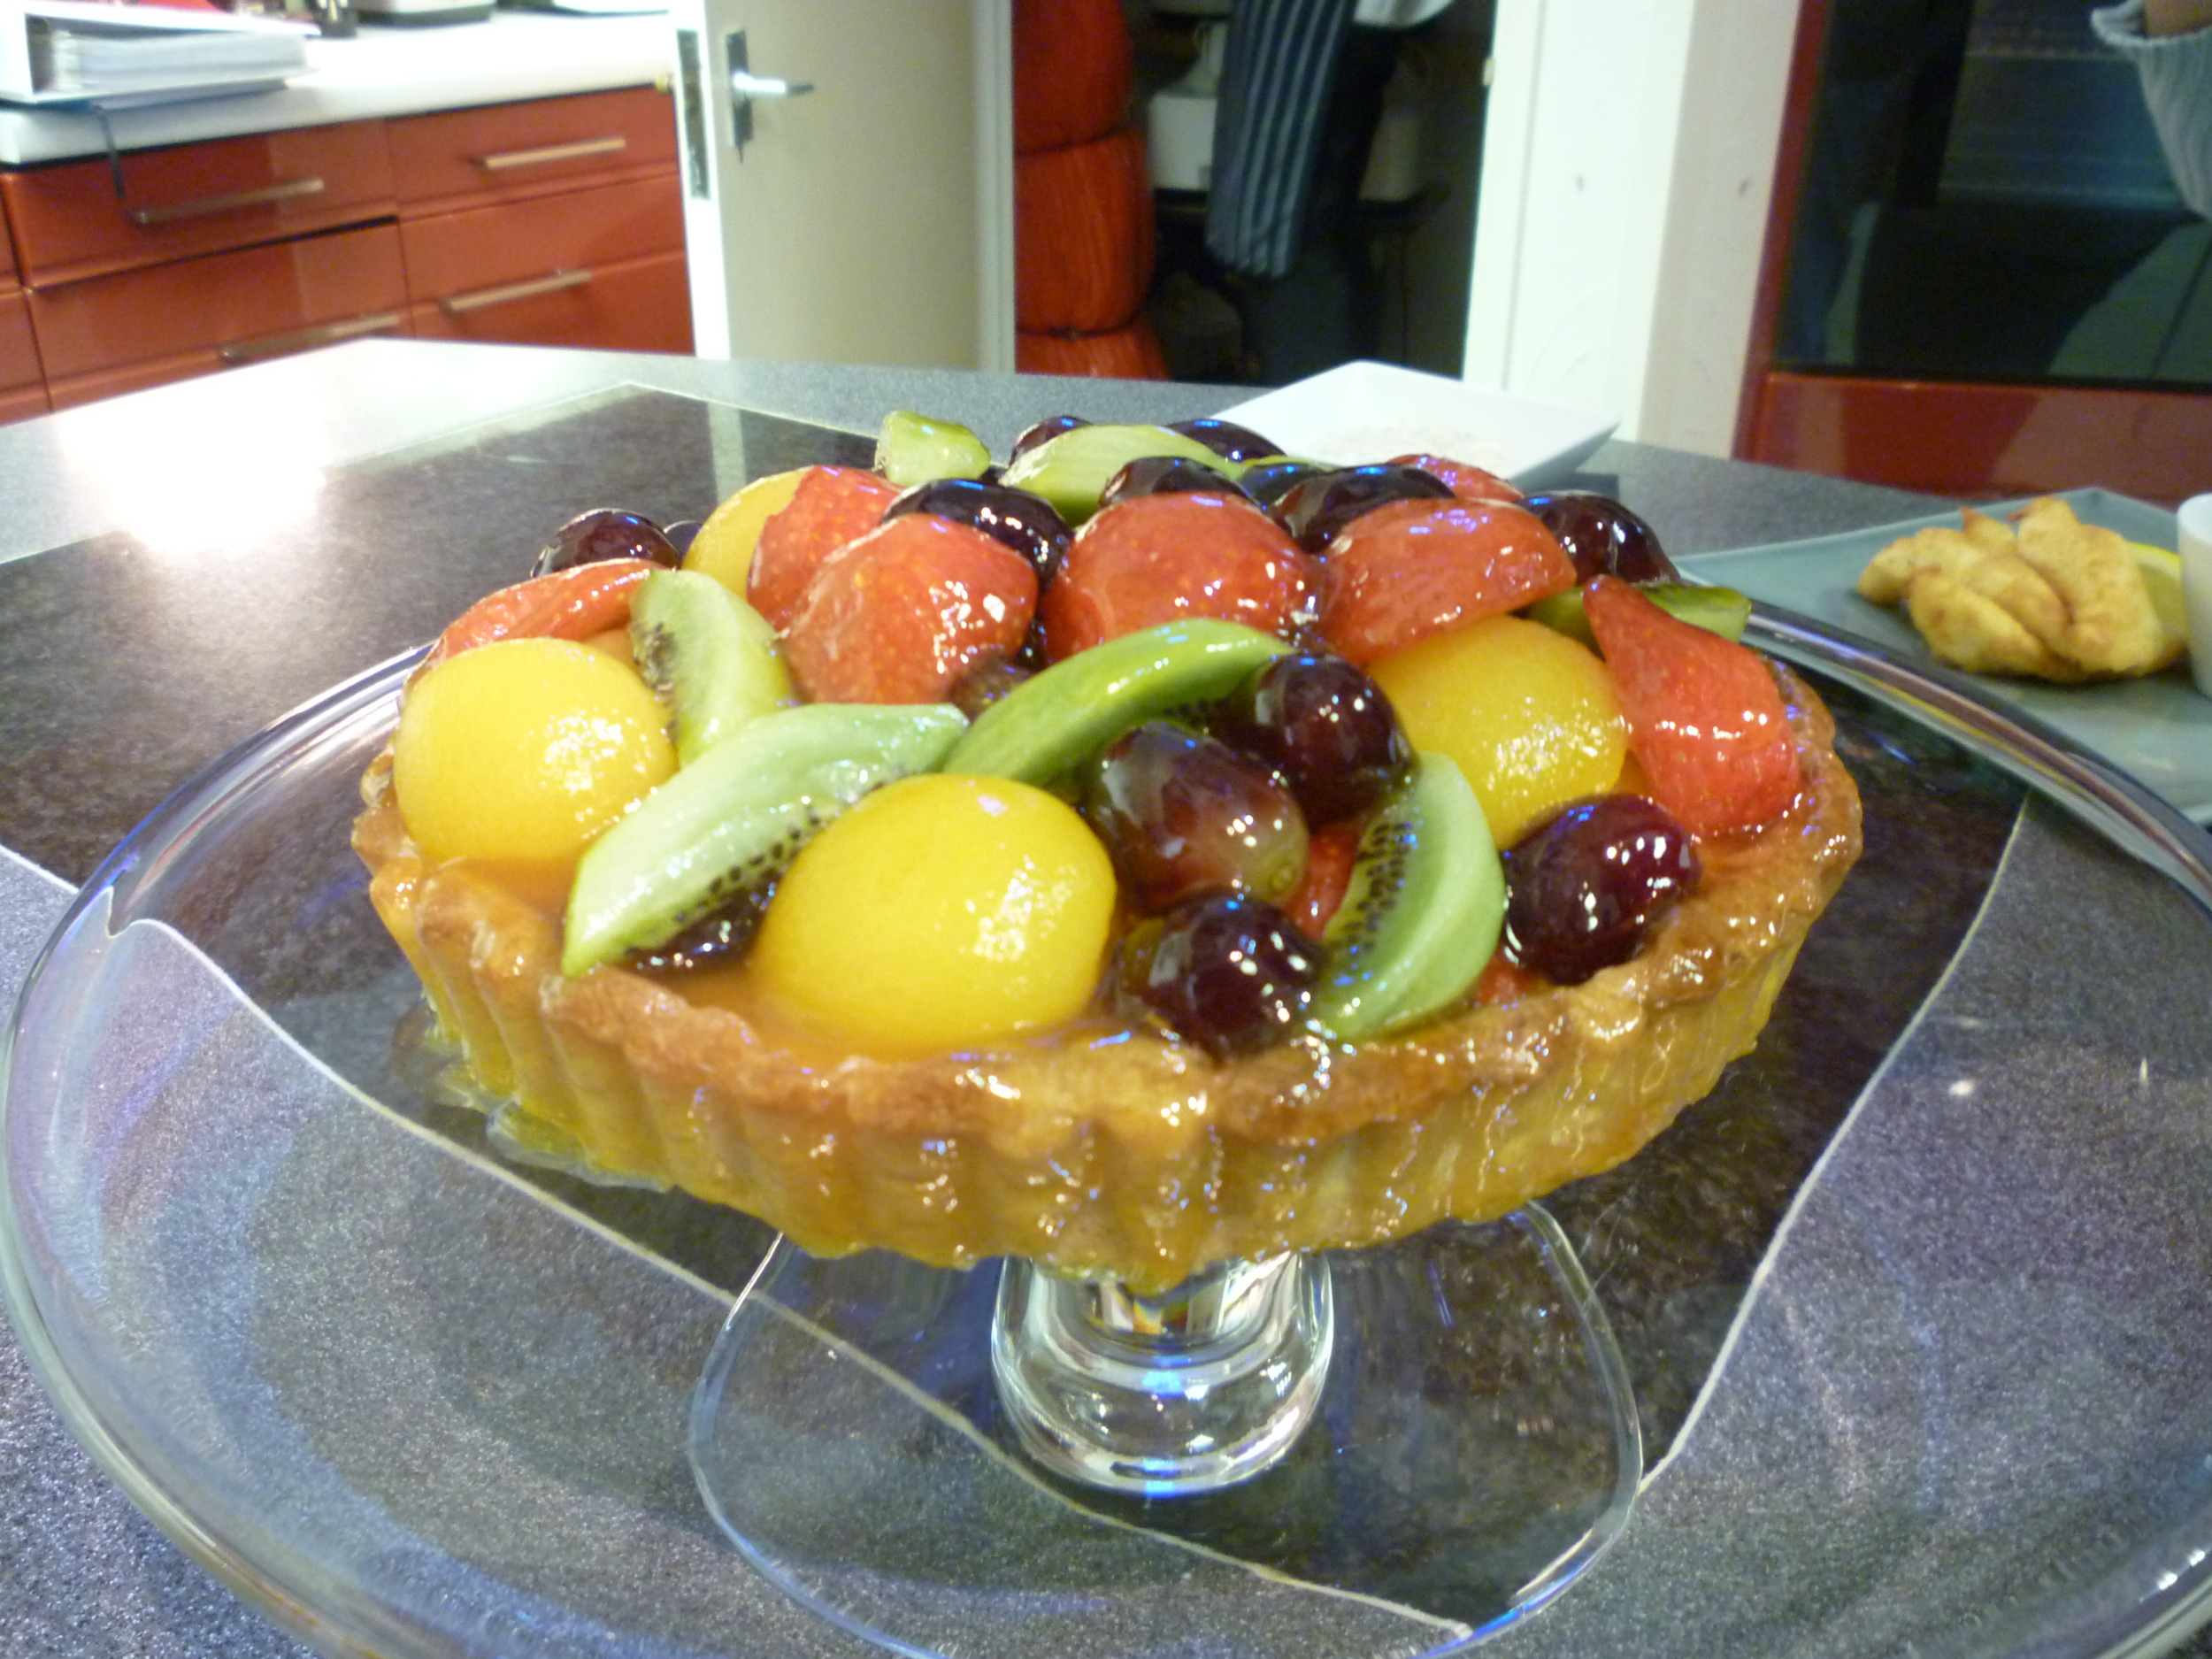 Tarte aux fruites which we'll be cooking ourselves next week